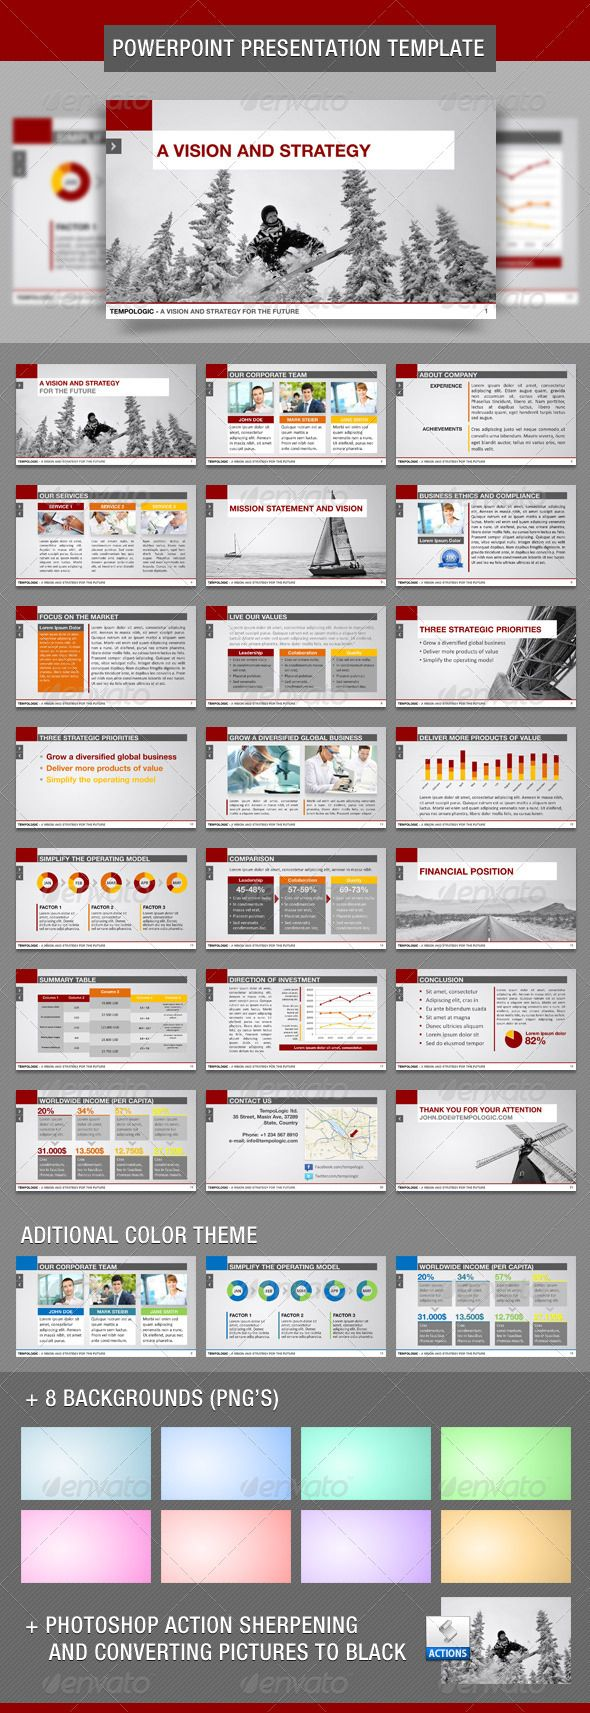 how to design your own powerpoint template - tempologic powerpoint template adobe photoshop adobe